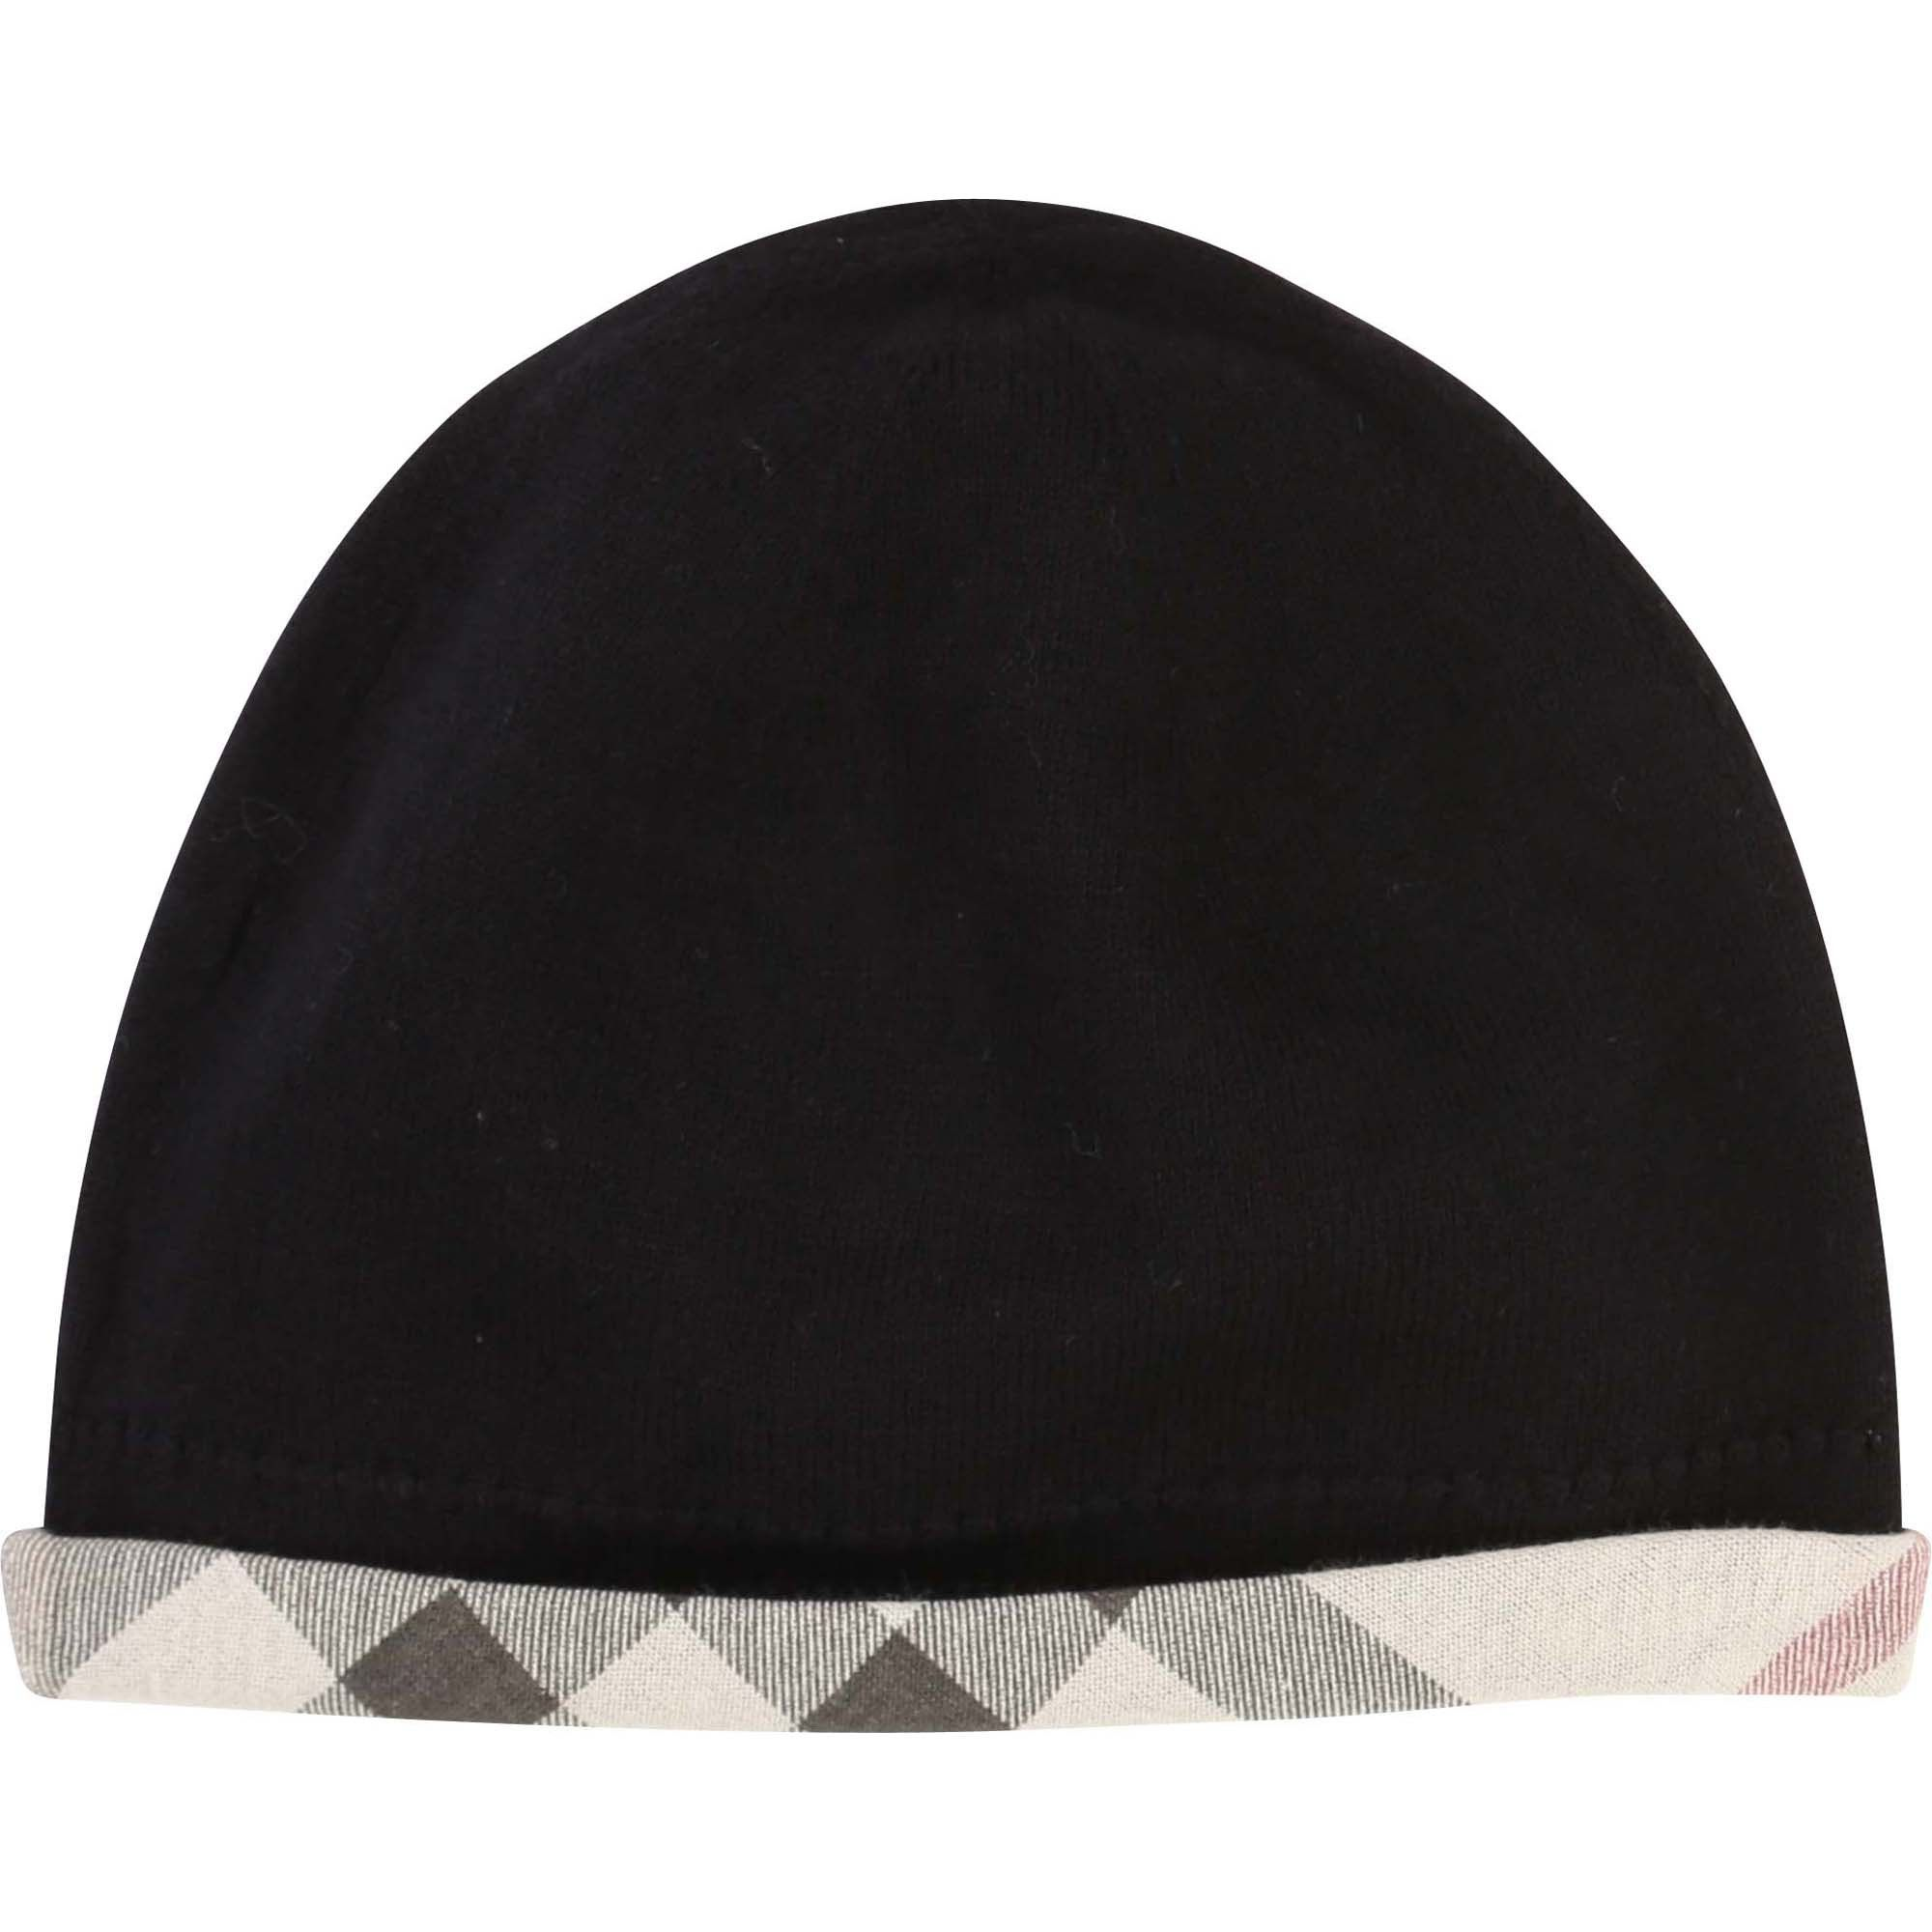 Bonnet BURBERRY Noir